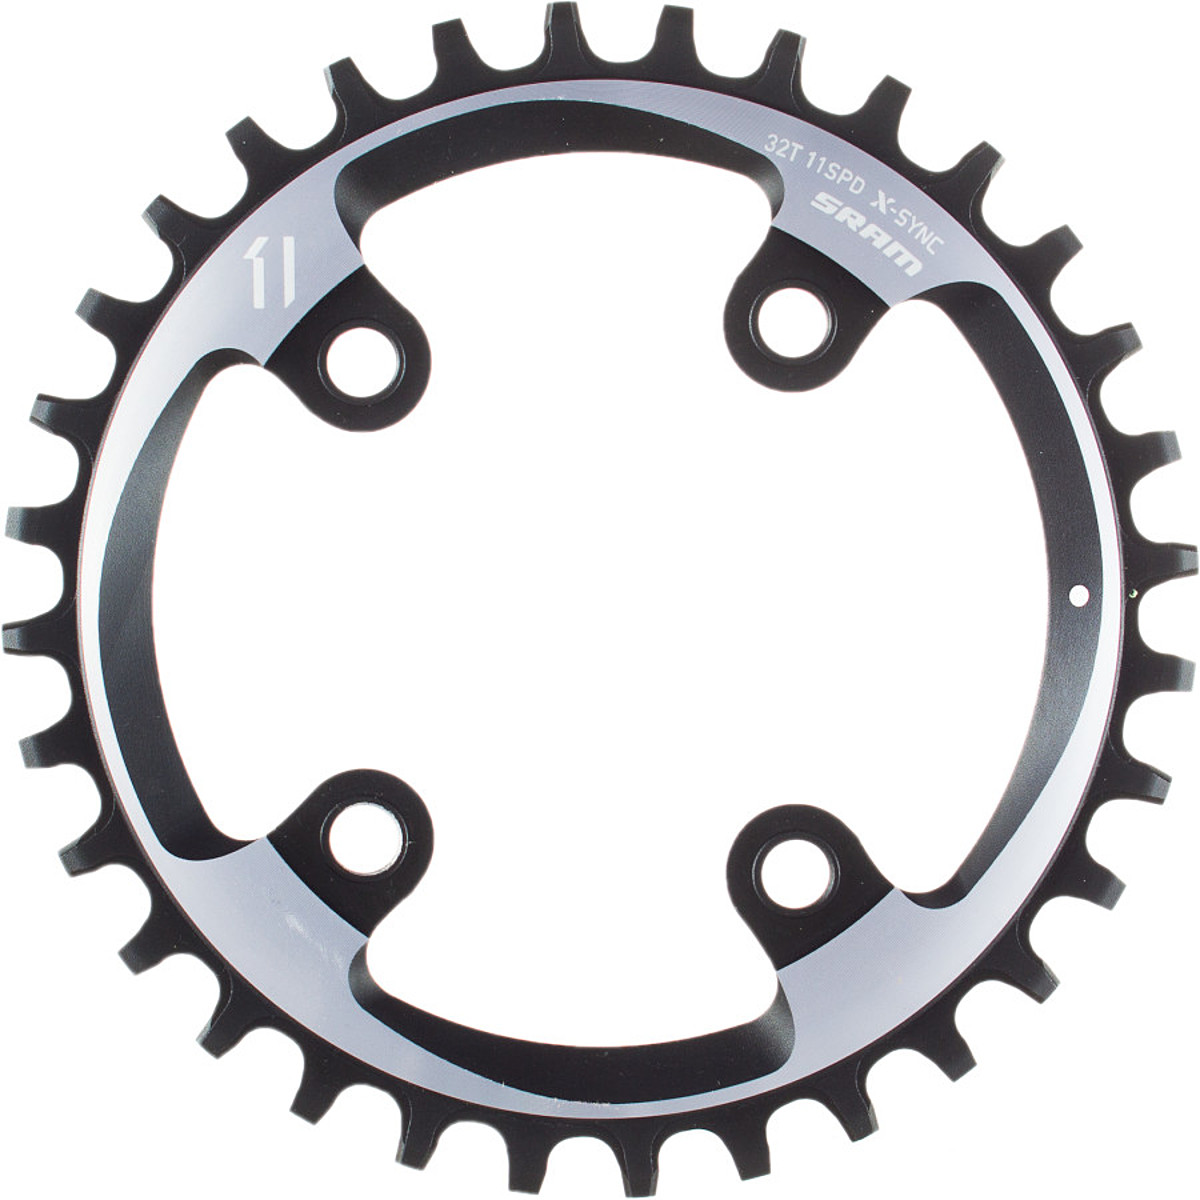 Sram Xx1 Chainring Competitive Cyclist